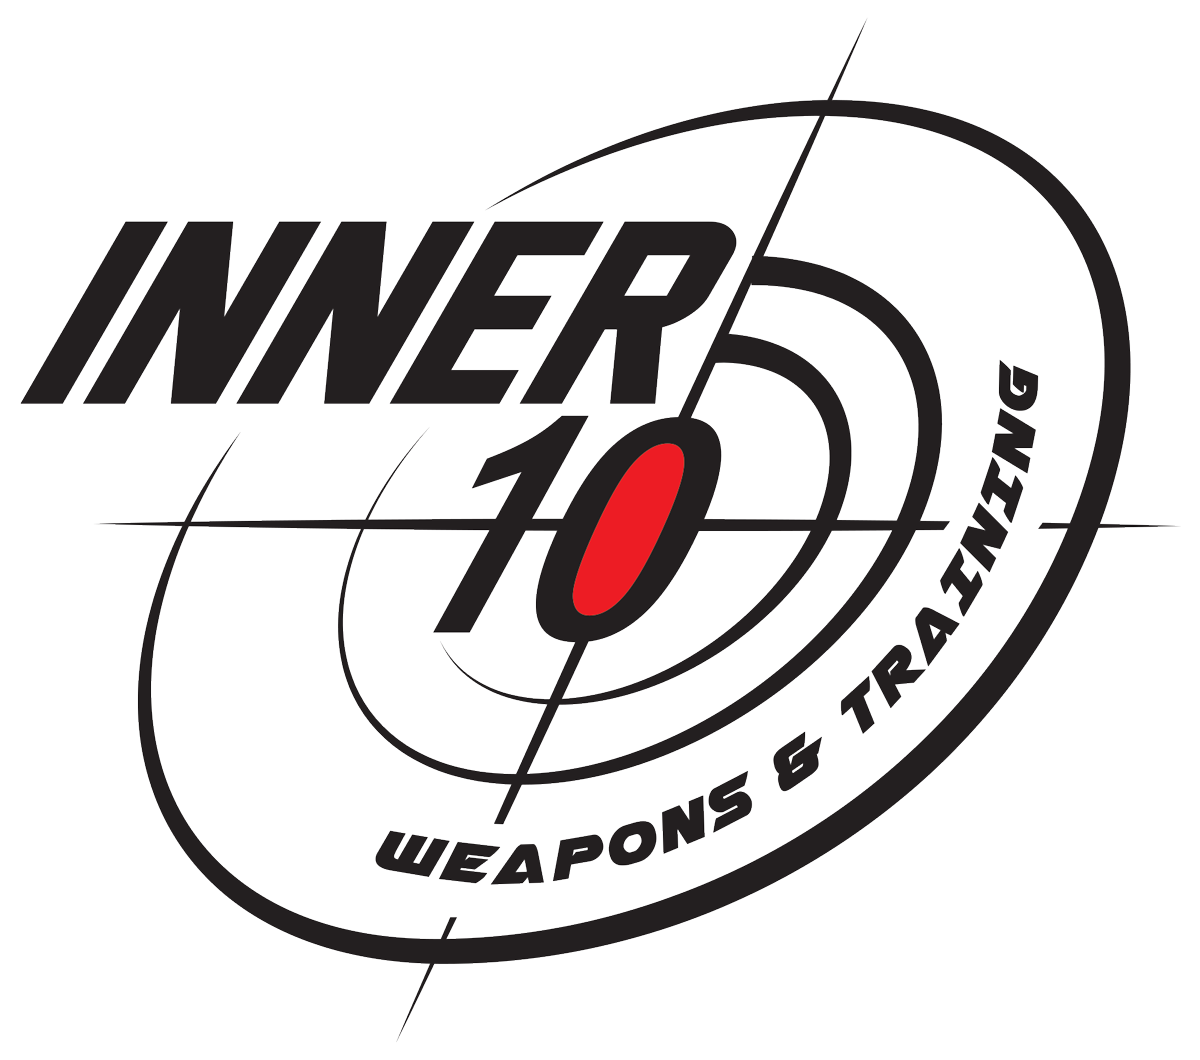 Inner 10 Weapons and Training